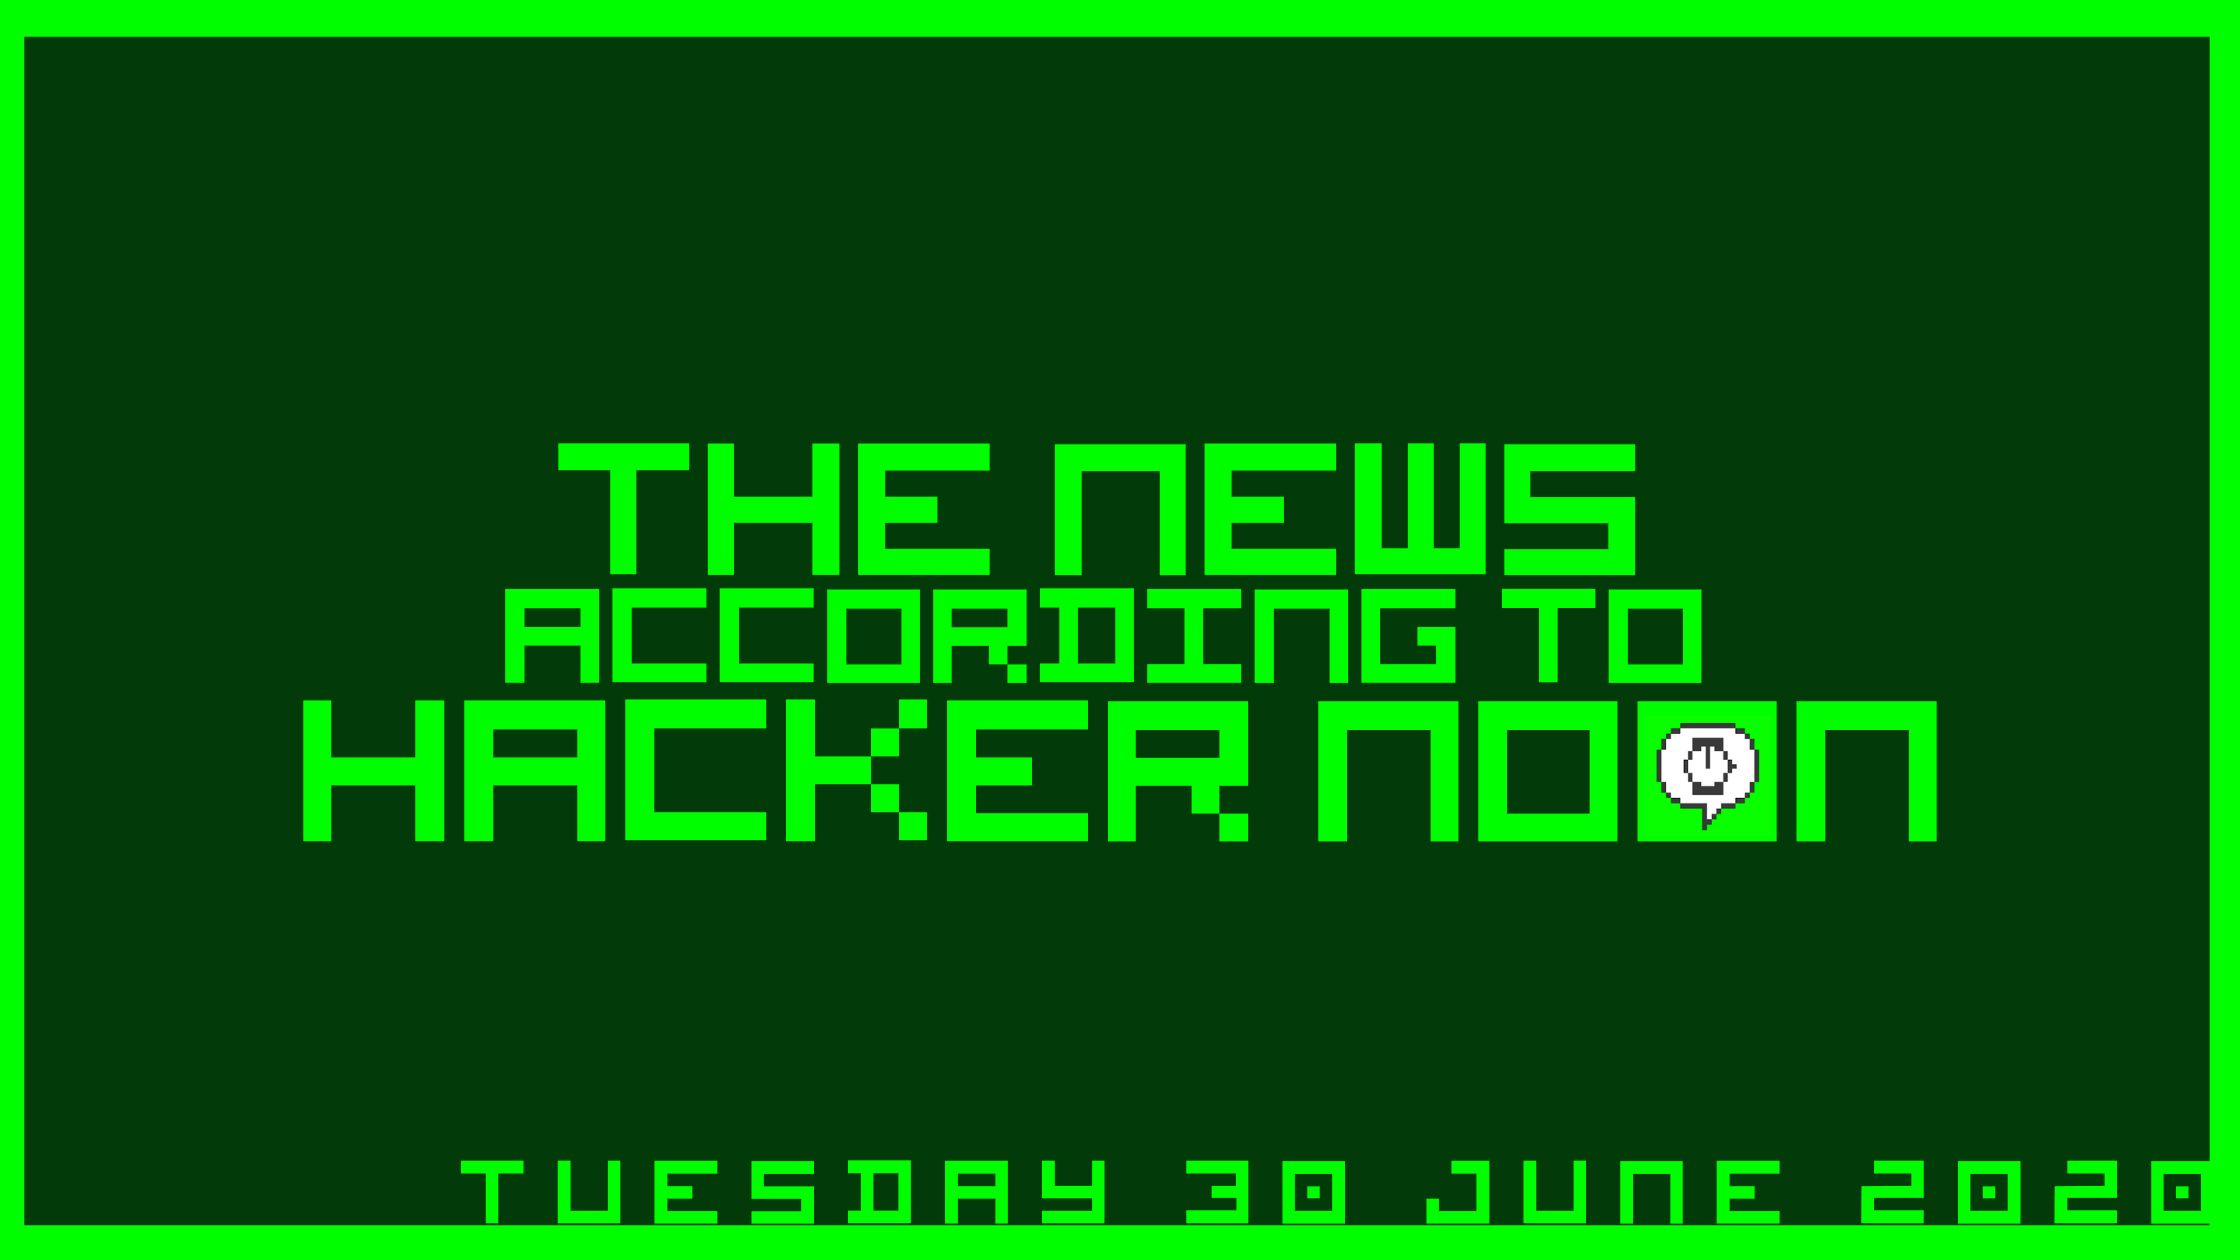 /the-news-according-to-hacker-noontuesday-30-june-2020-wp63uum feature image